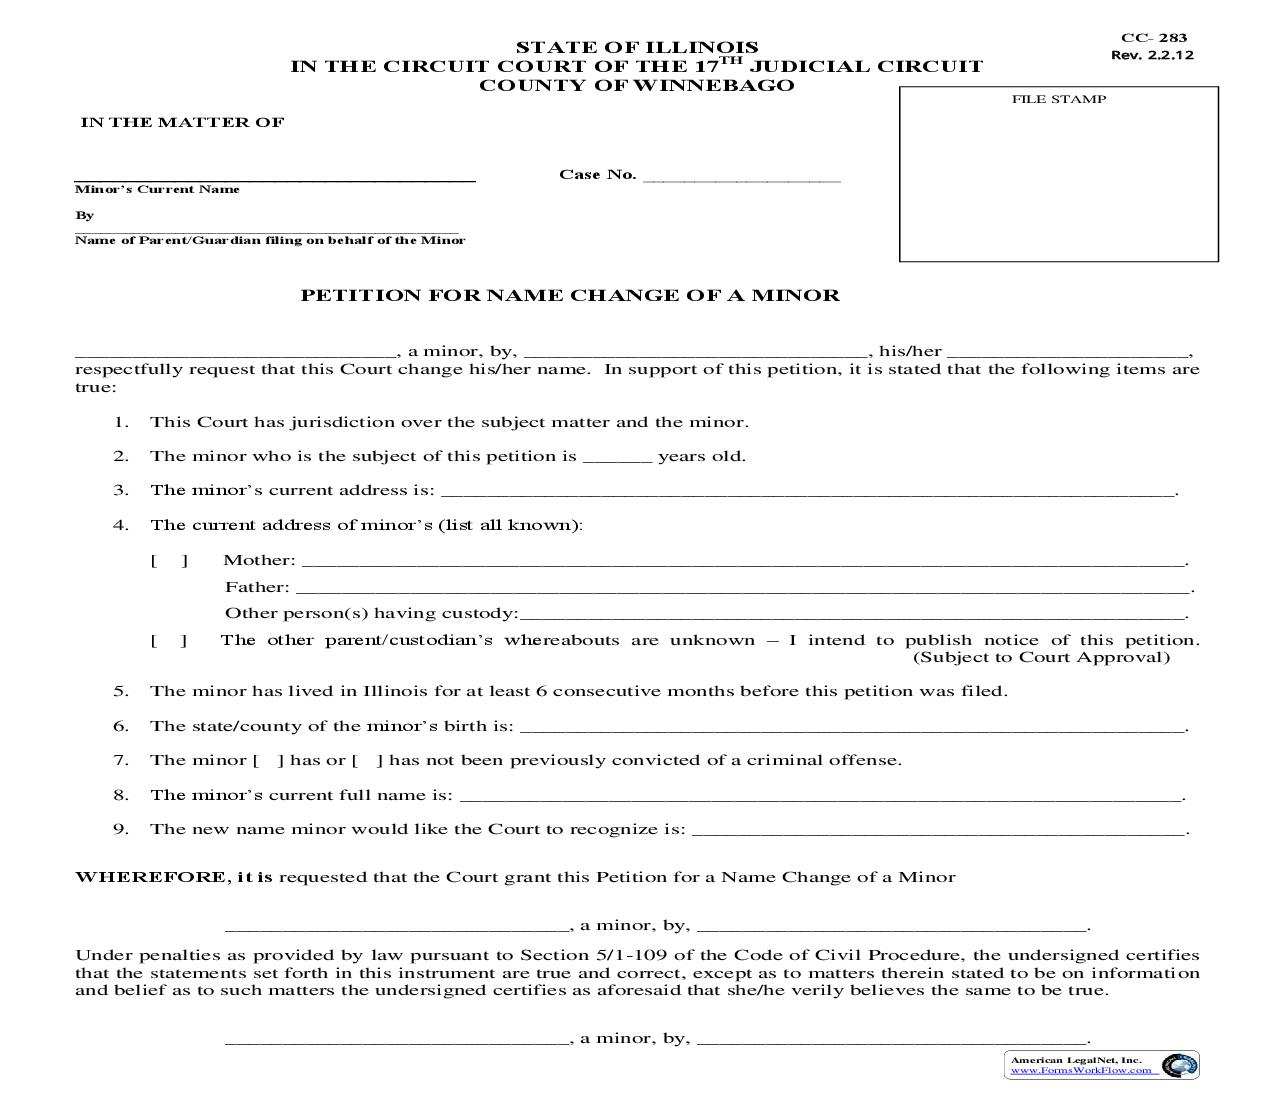 Petition For Name Change Of A Minor {CC-283} | Pdf Fpdf Doc Docx | Illinois